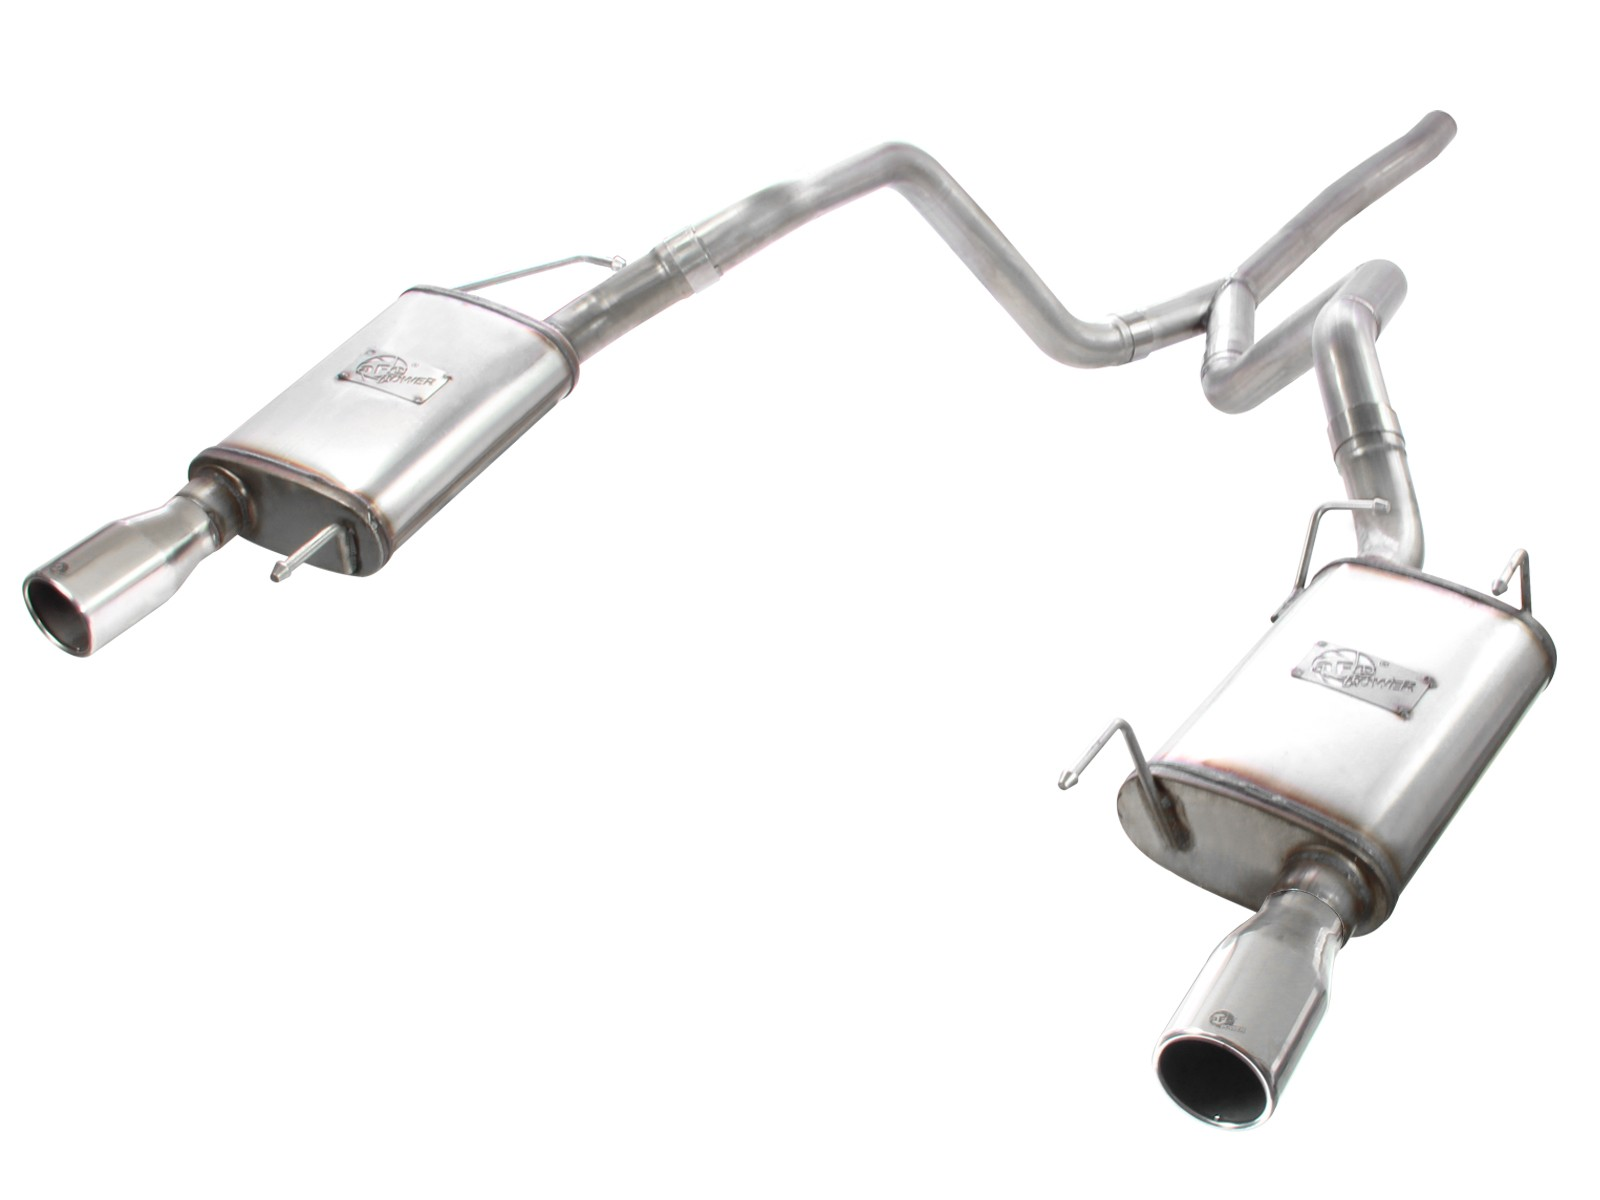 """aFe POWER 49-43047 MACH Force-Xp 2-1/2"""" 409 Stainless Steel Cat-Back Exhaust System"""